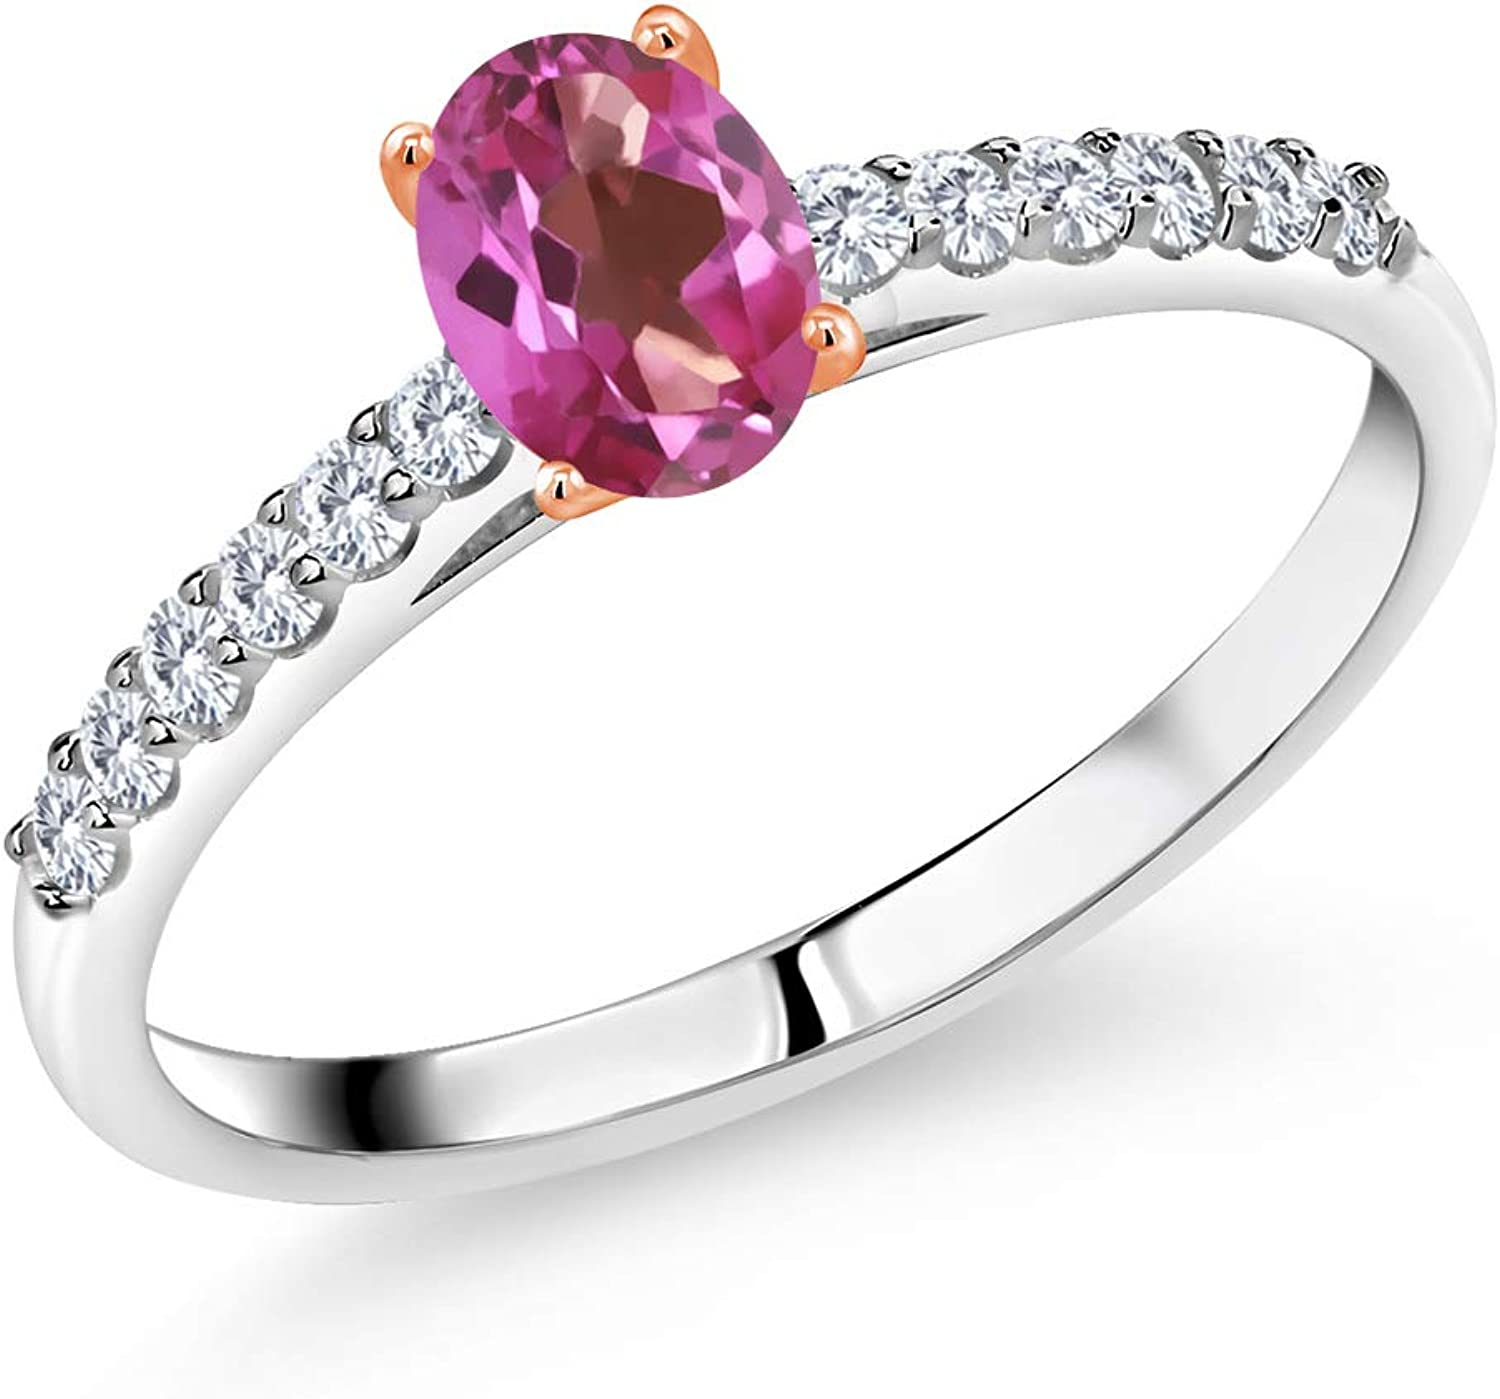 Gem Stone King 925 Silver Ring Oklahoma City Mall w M service 0.68 Rose Gold Ct Prongs 10K